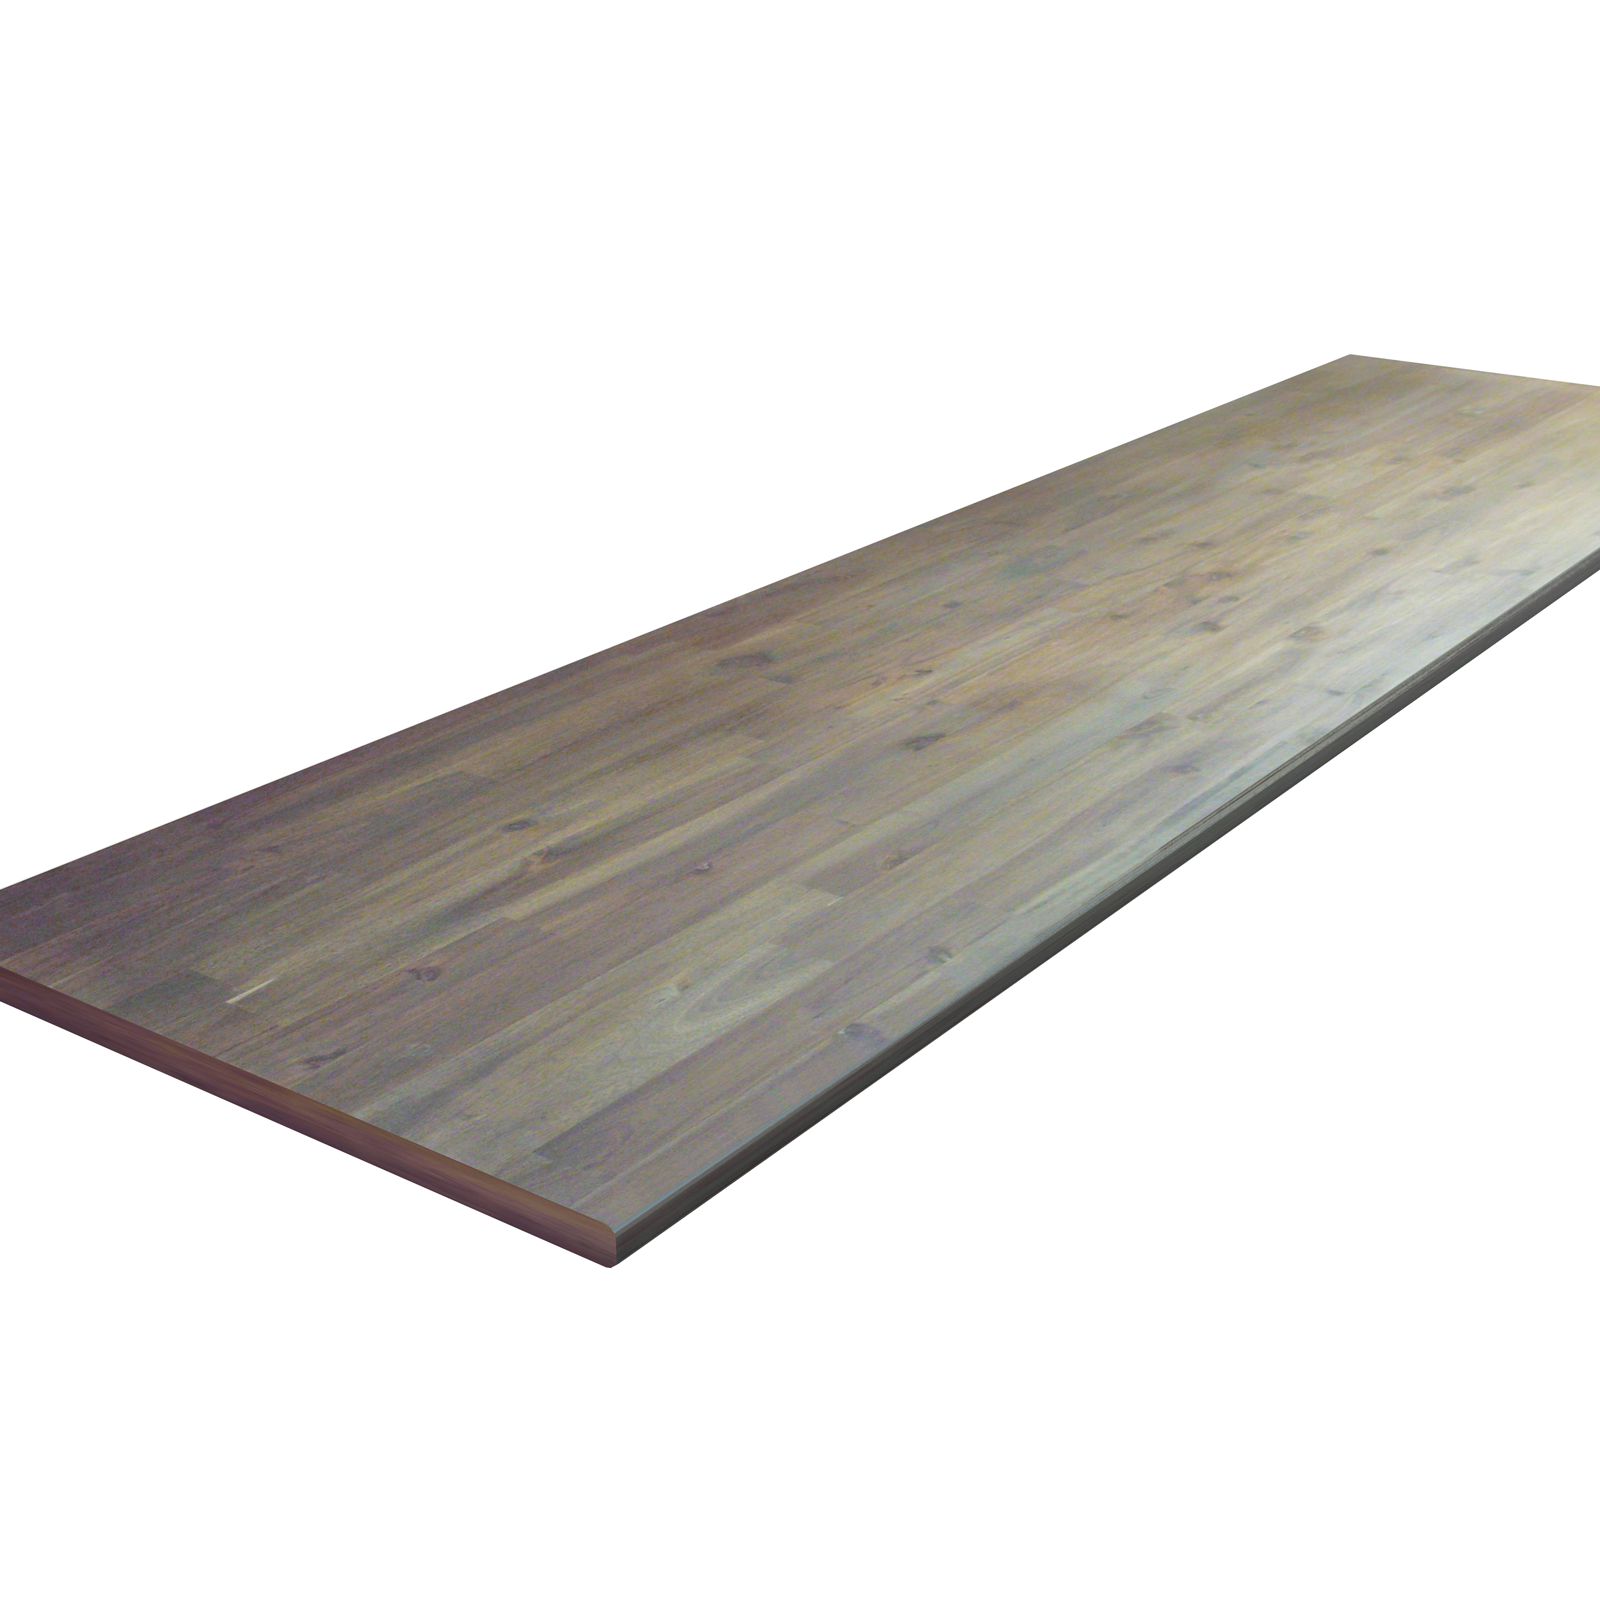 SpecRite 1200 x 300 x 18mm Brown Acacia Oiled Panel